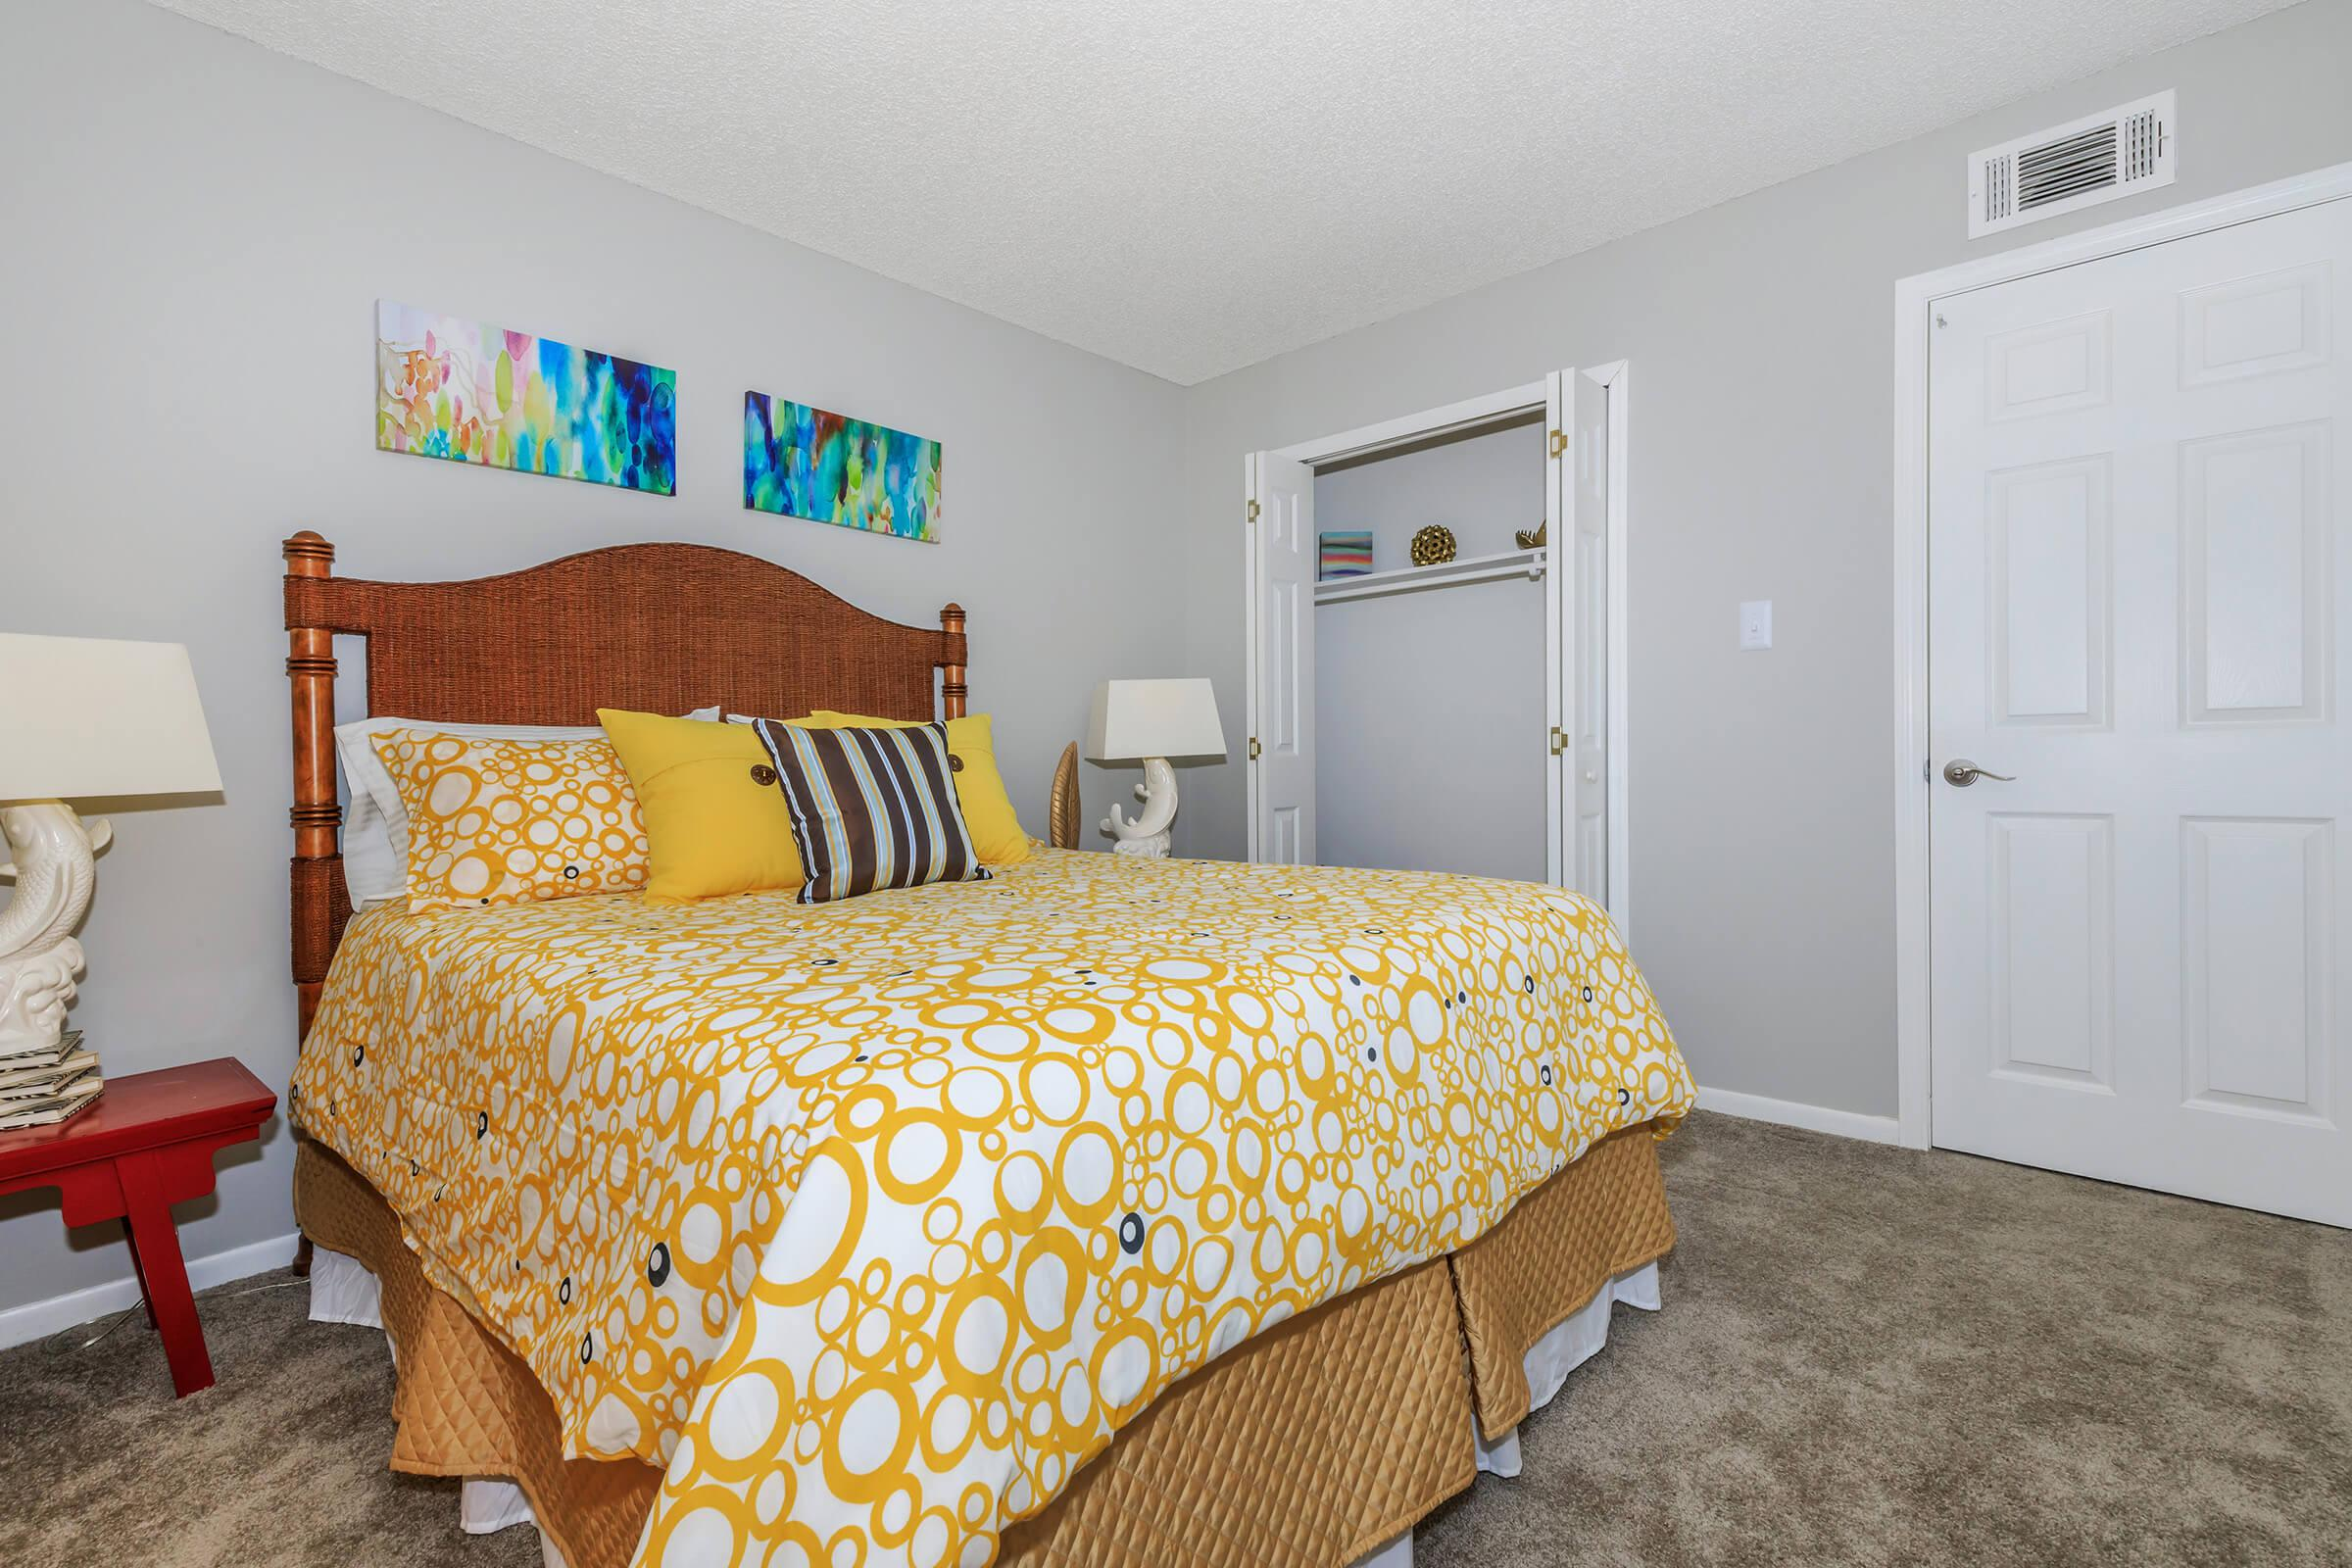 KINGSTON POINTE APARTMENTS IN KNOXVILLE, TN